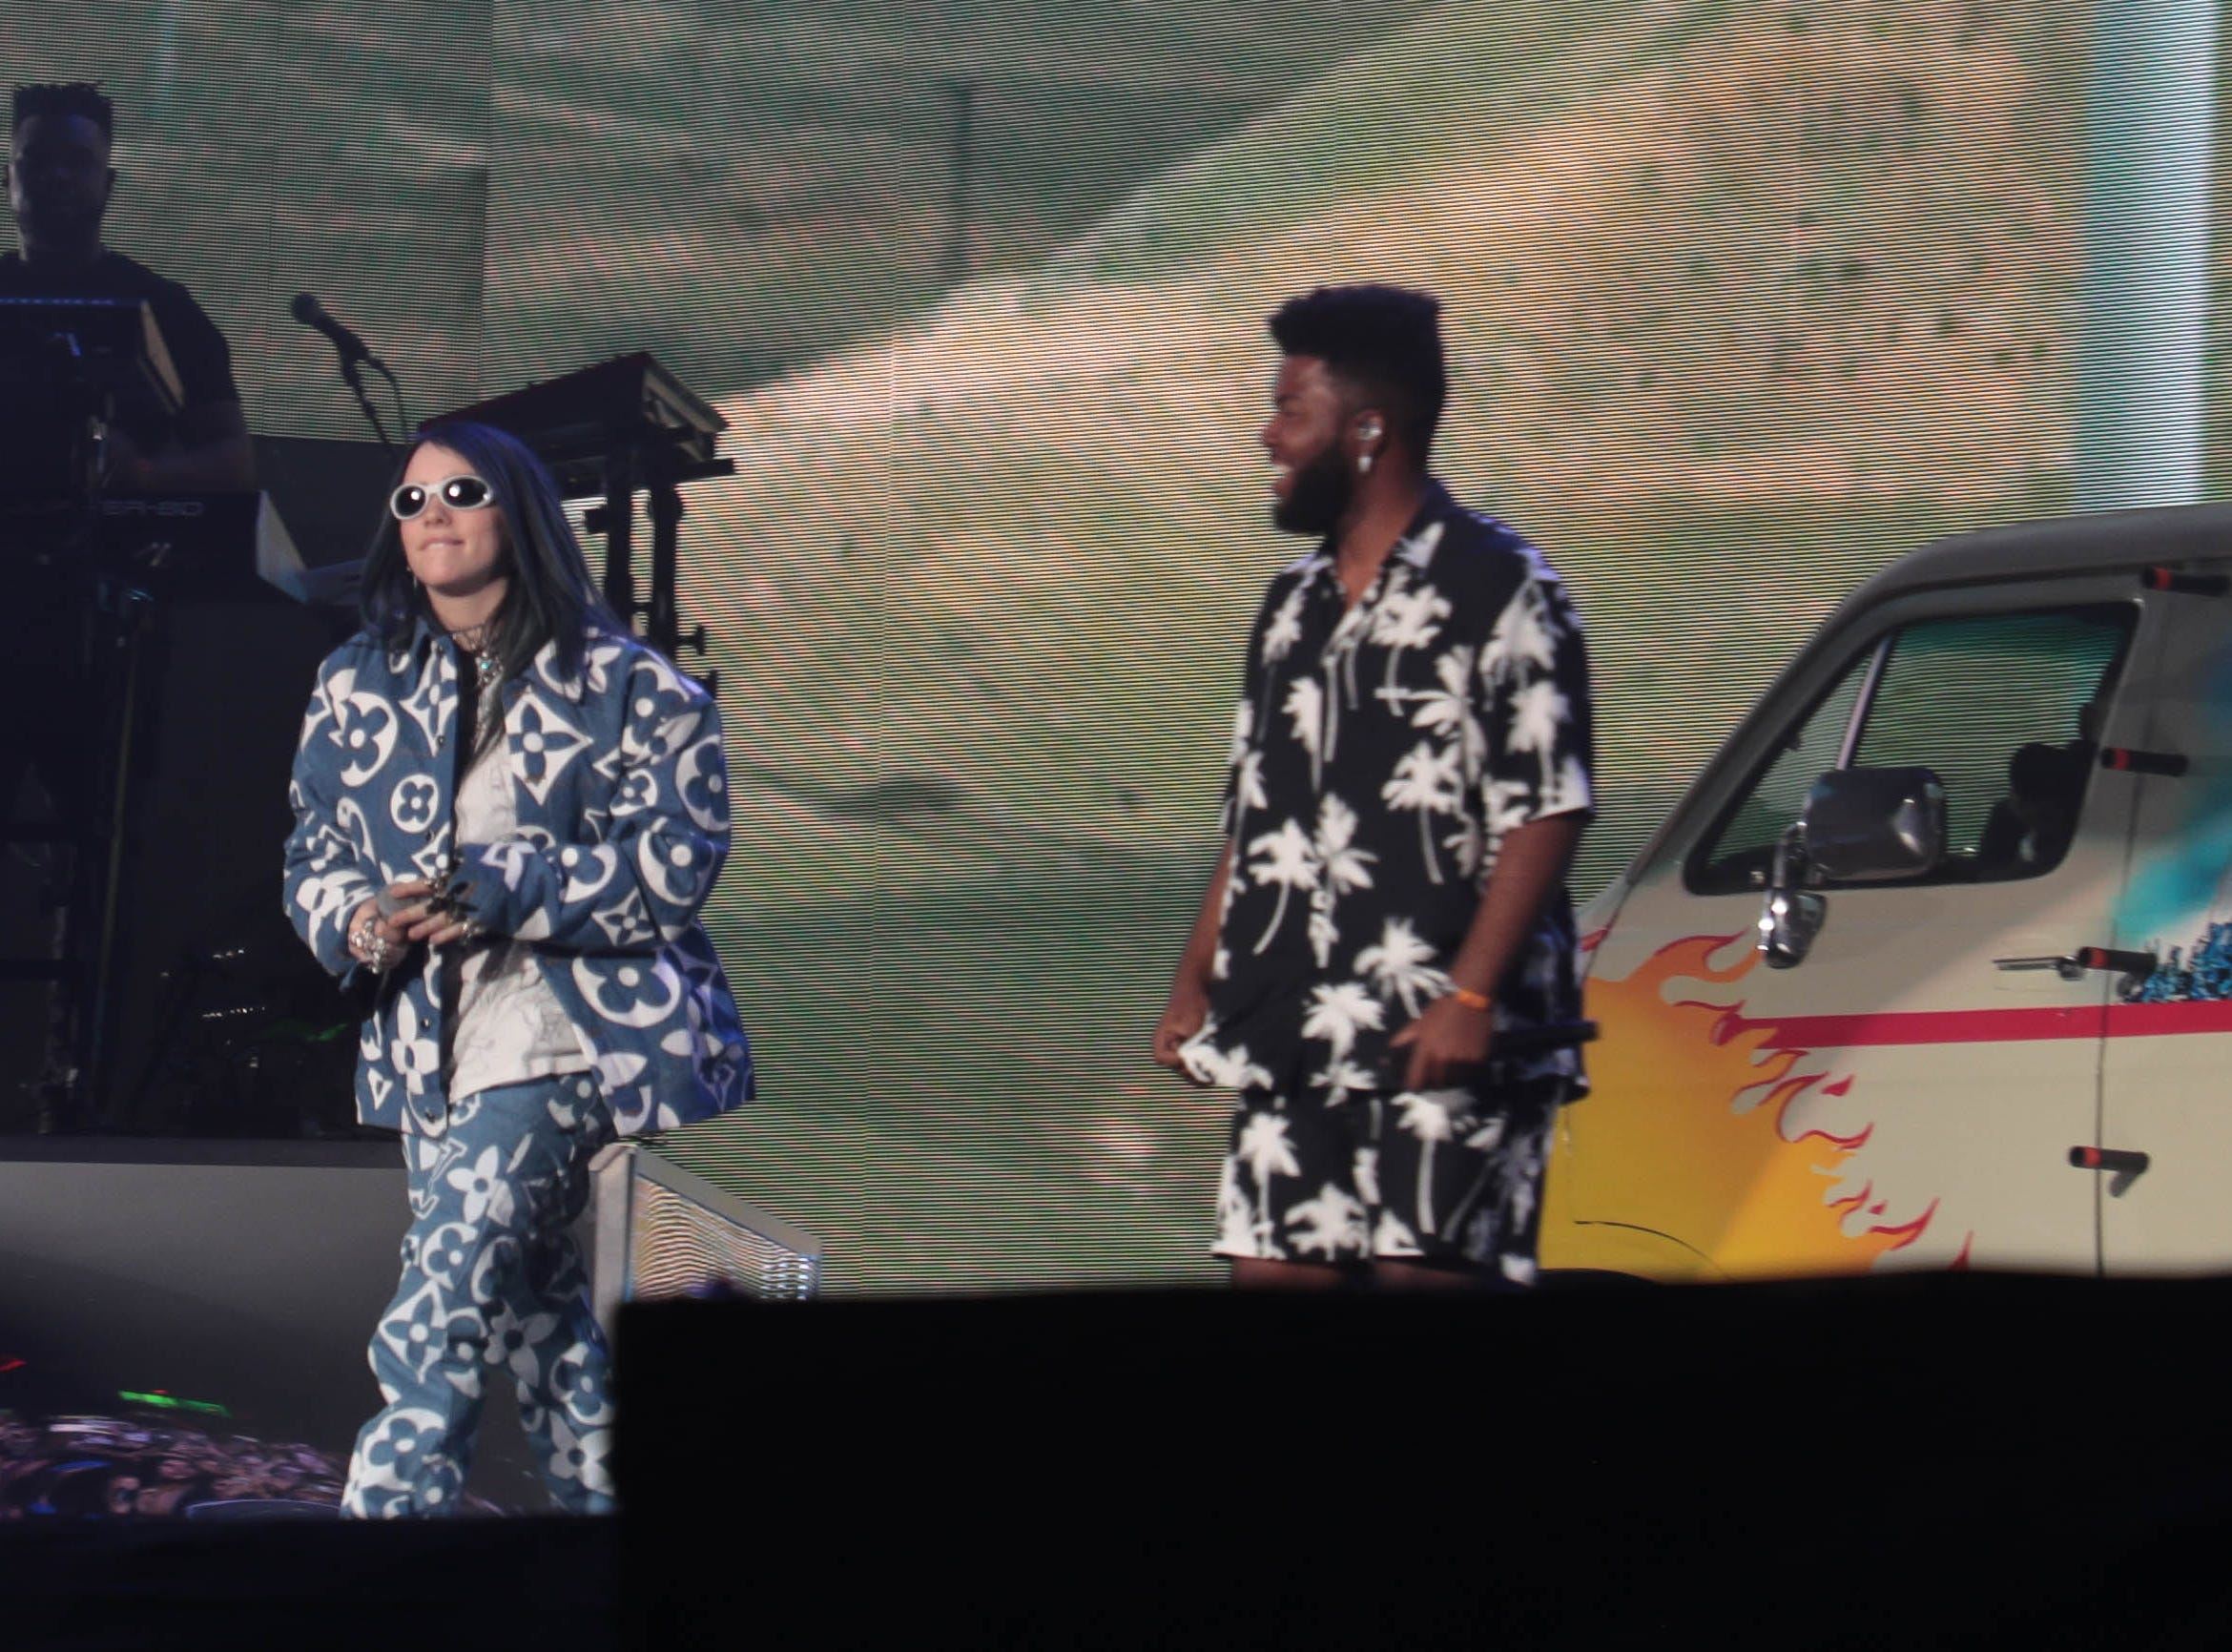 Billie Eilish and Khalid perform at the Coachella Valley Music and Arts Festival on Sunday, April 14, 2019 in Indio, Calif.